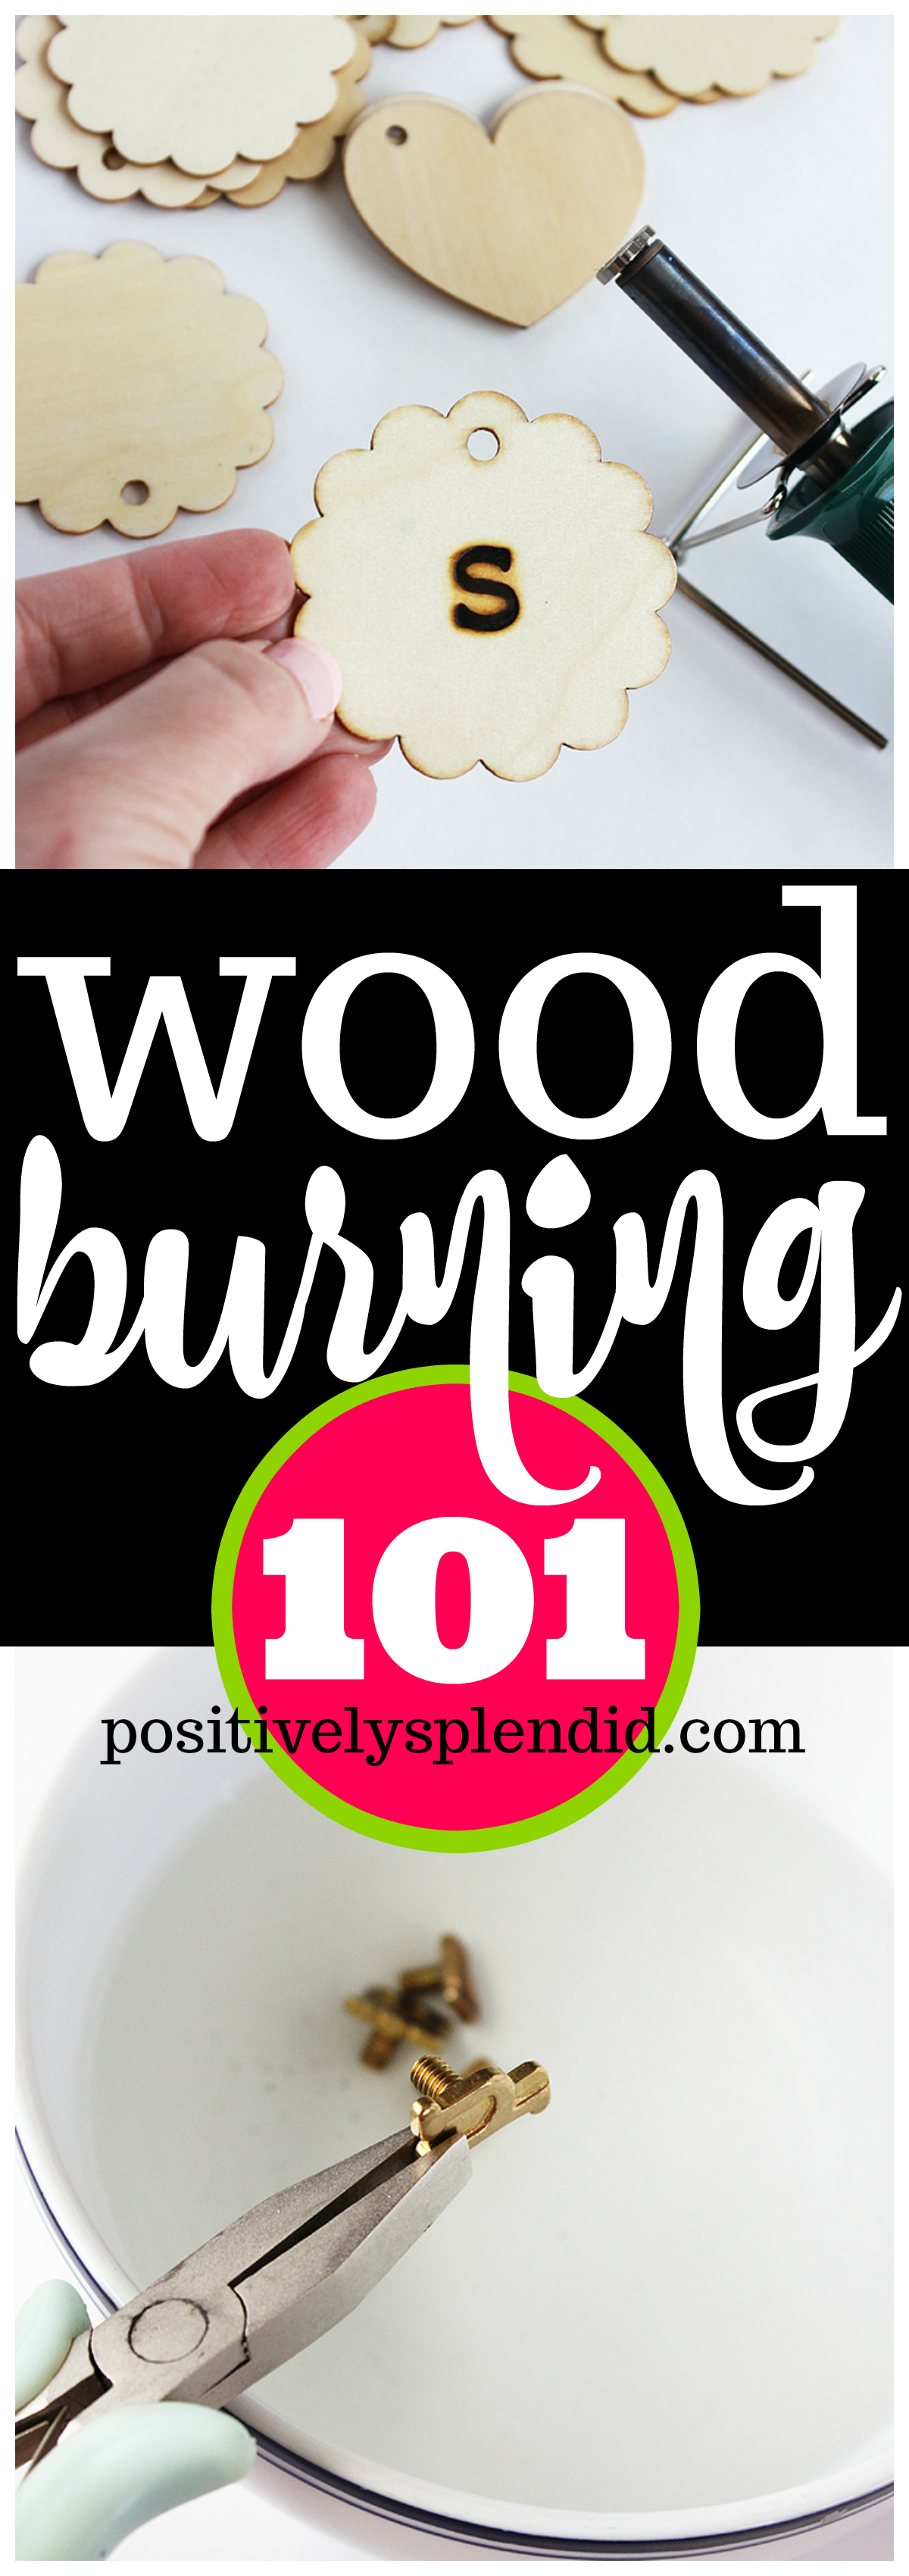 Wood Burning For Beginners: 10 Great Wood Burning Tips and Tricks